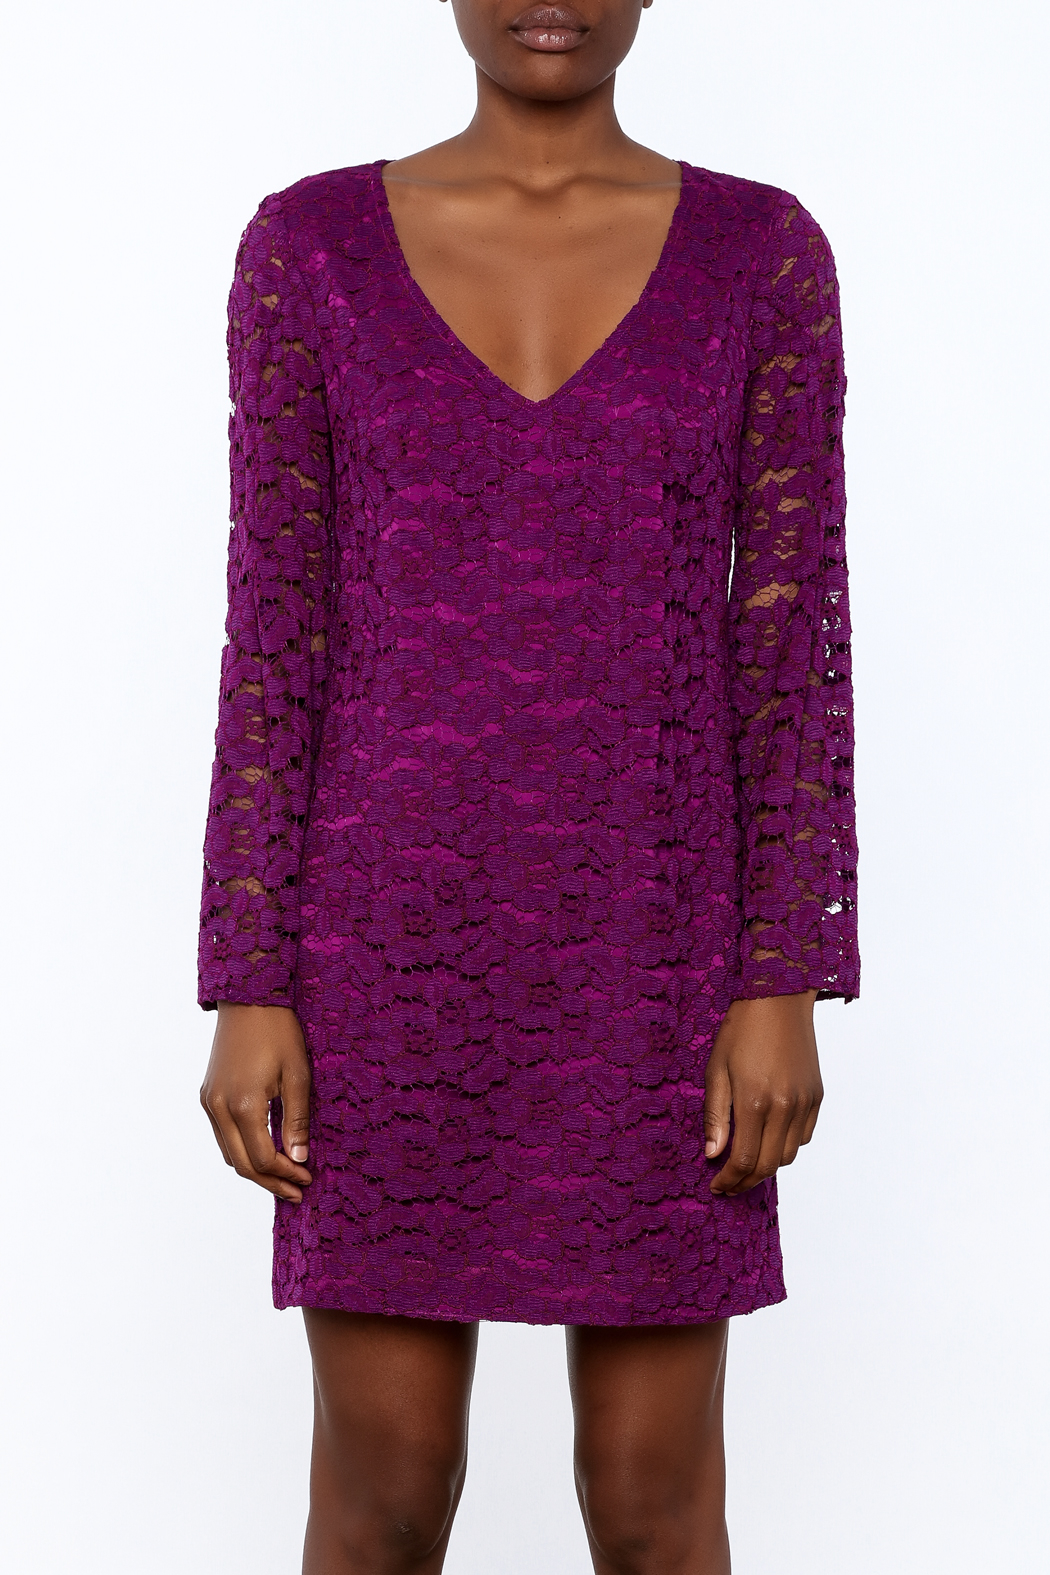 Trina Turk Purple Revue Dress - Side Cropped Image